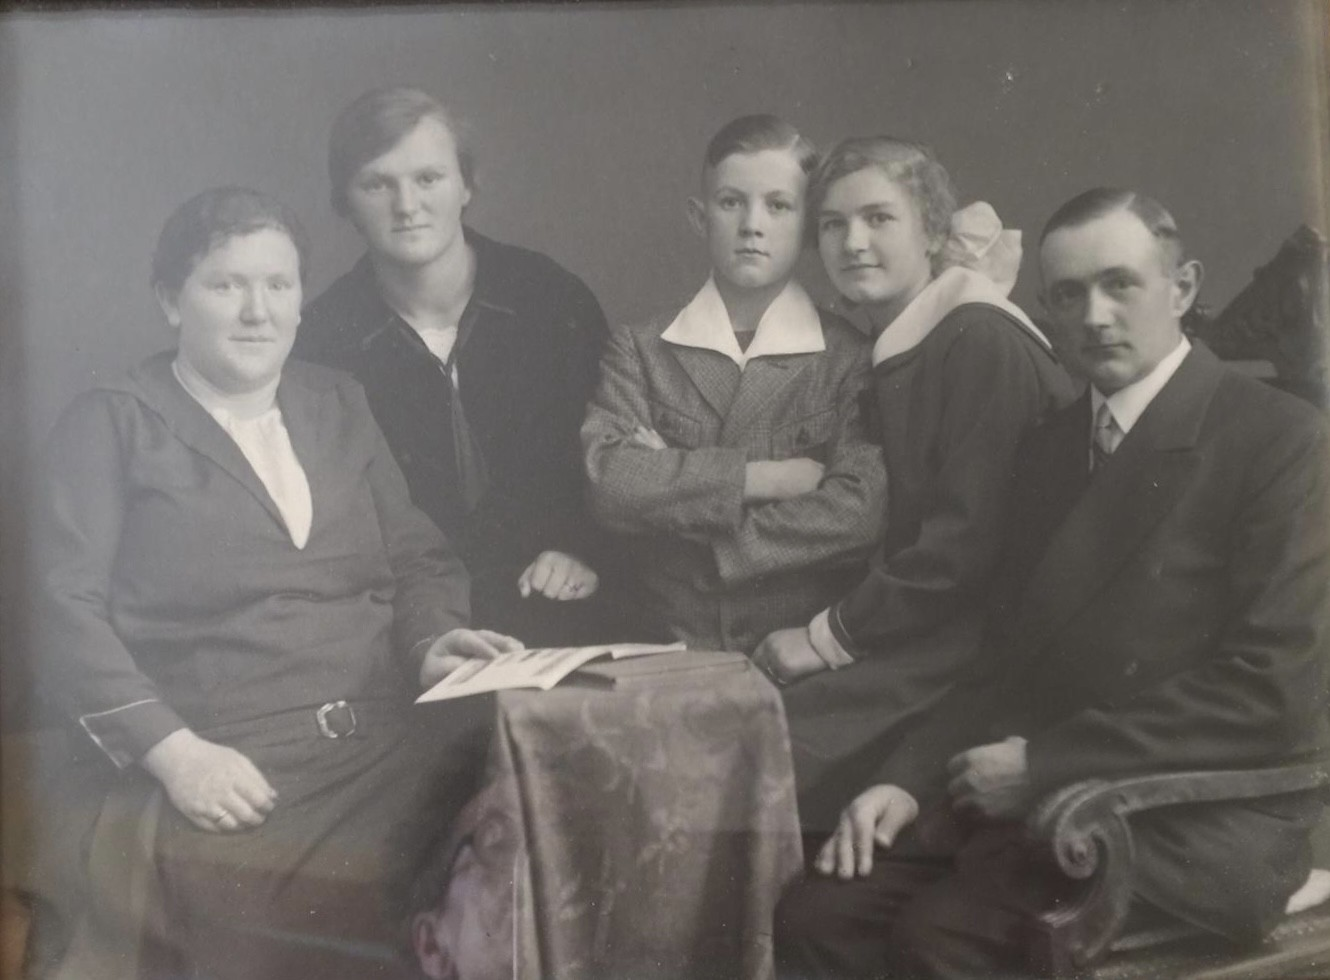 My grandmother surrounded by her family